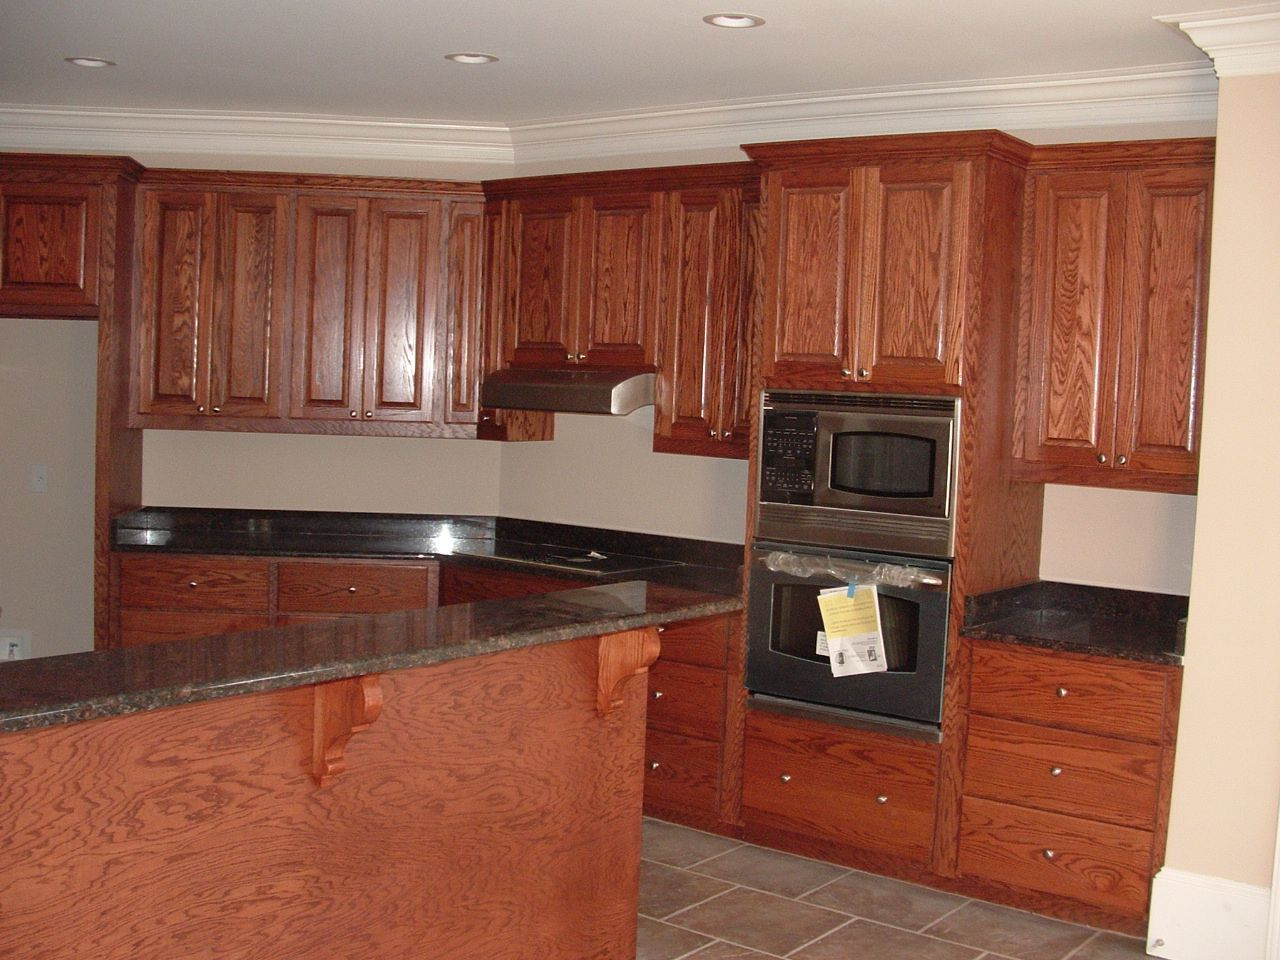 Mills Pride Kitchen Cabinets Excellent Idea On Mills Pride Kitchen Cabinets Home Landscaping